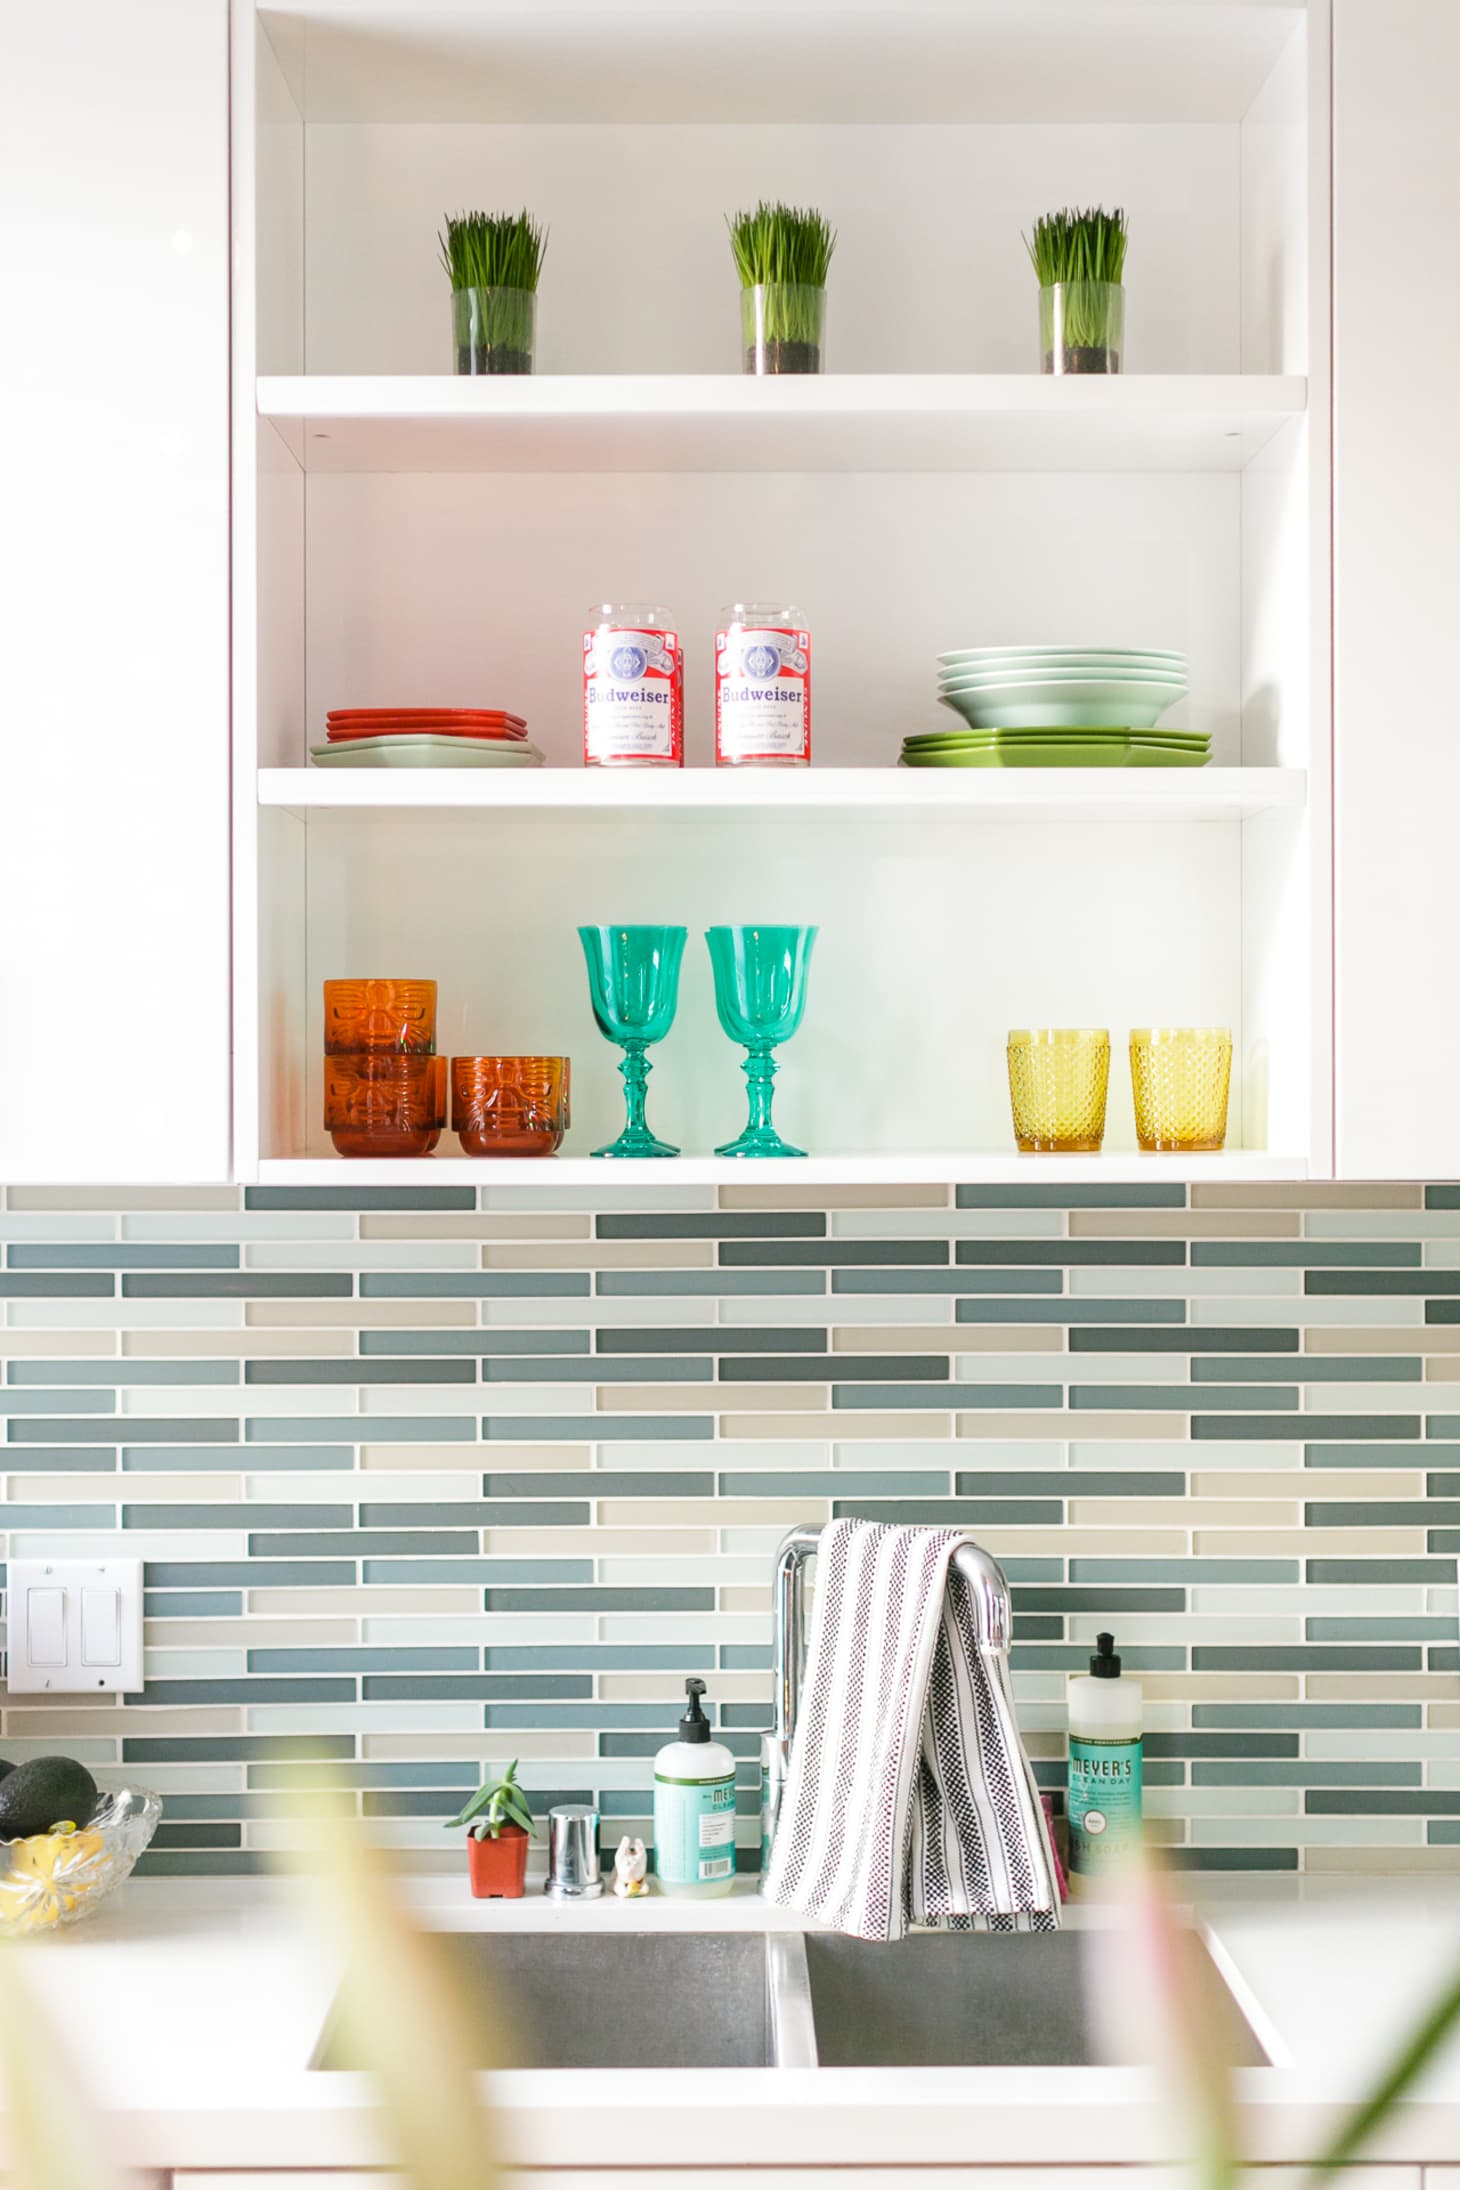 What Not To Do 7 Cleaning Tips Everyone Gets Wrong